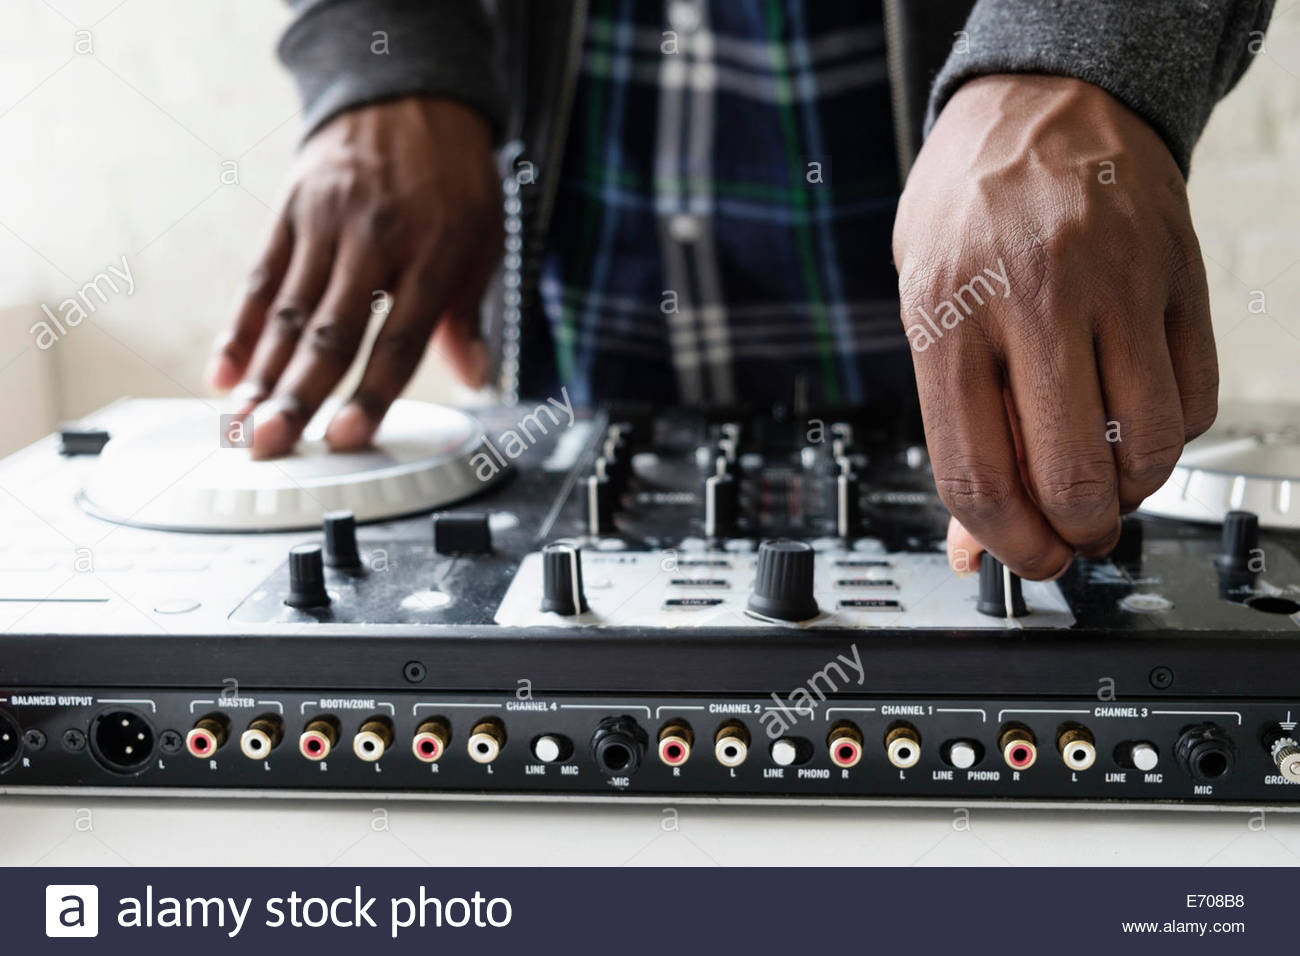 DJ using mixing desk, close up - Stock Image